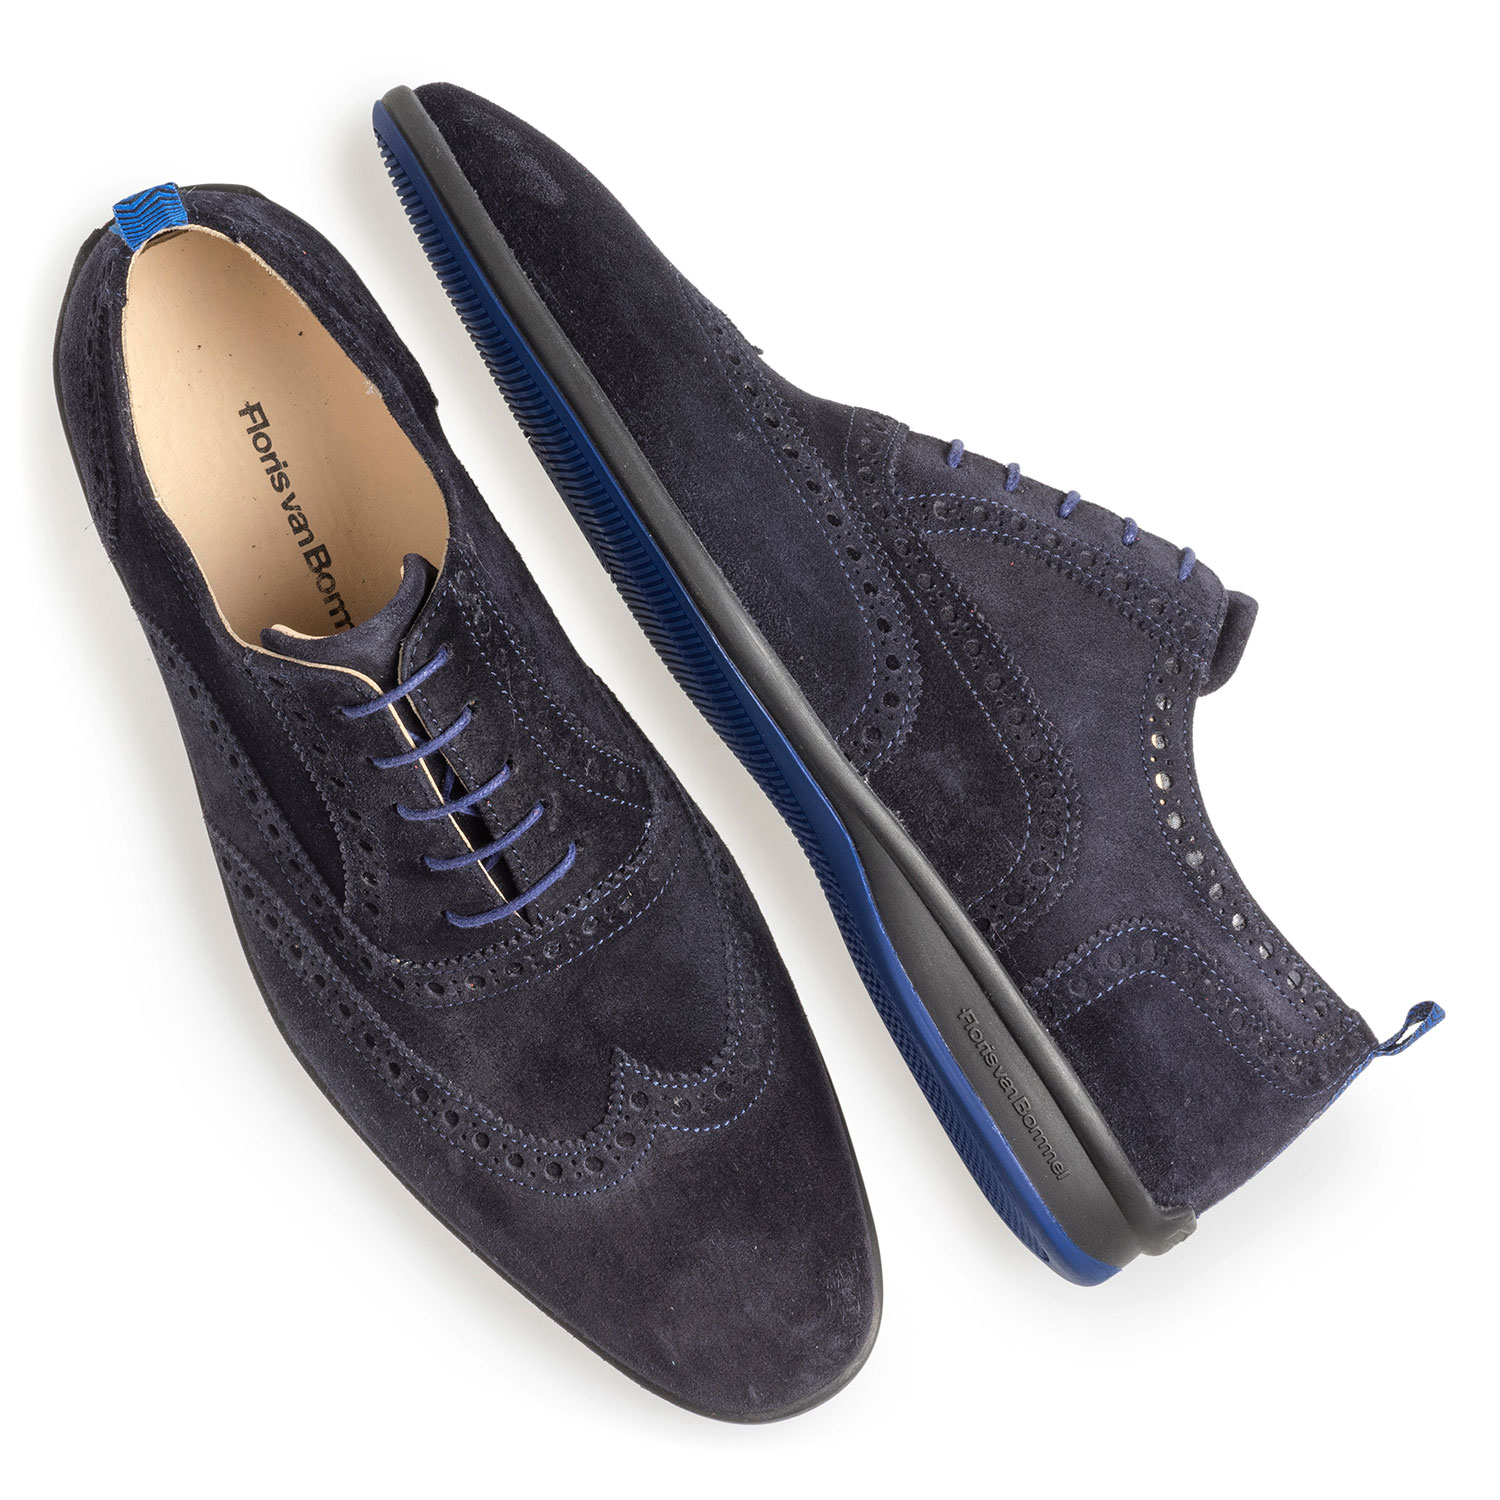 16360/00 - Dark blue suede leather lace shoe